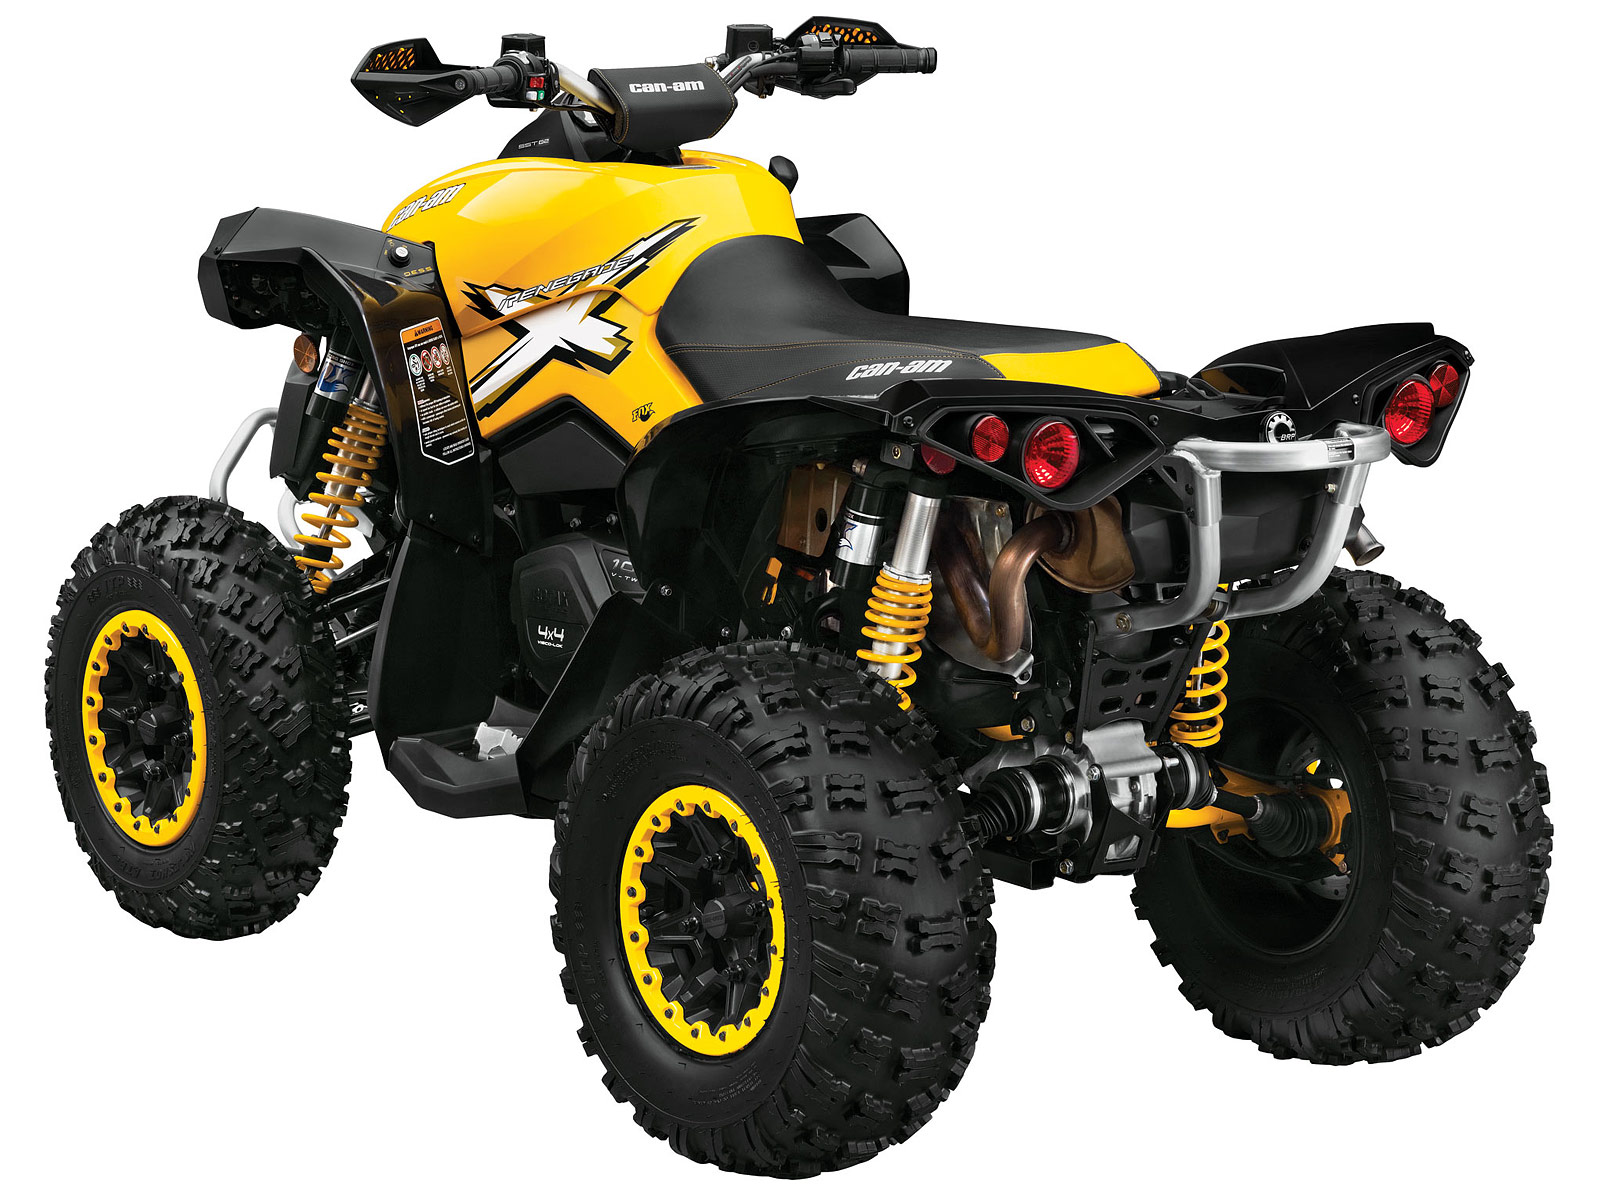 2013 can am renegade xxc 1000 atv pictures 480x360 pixels